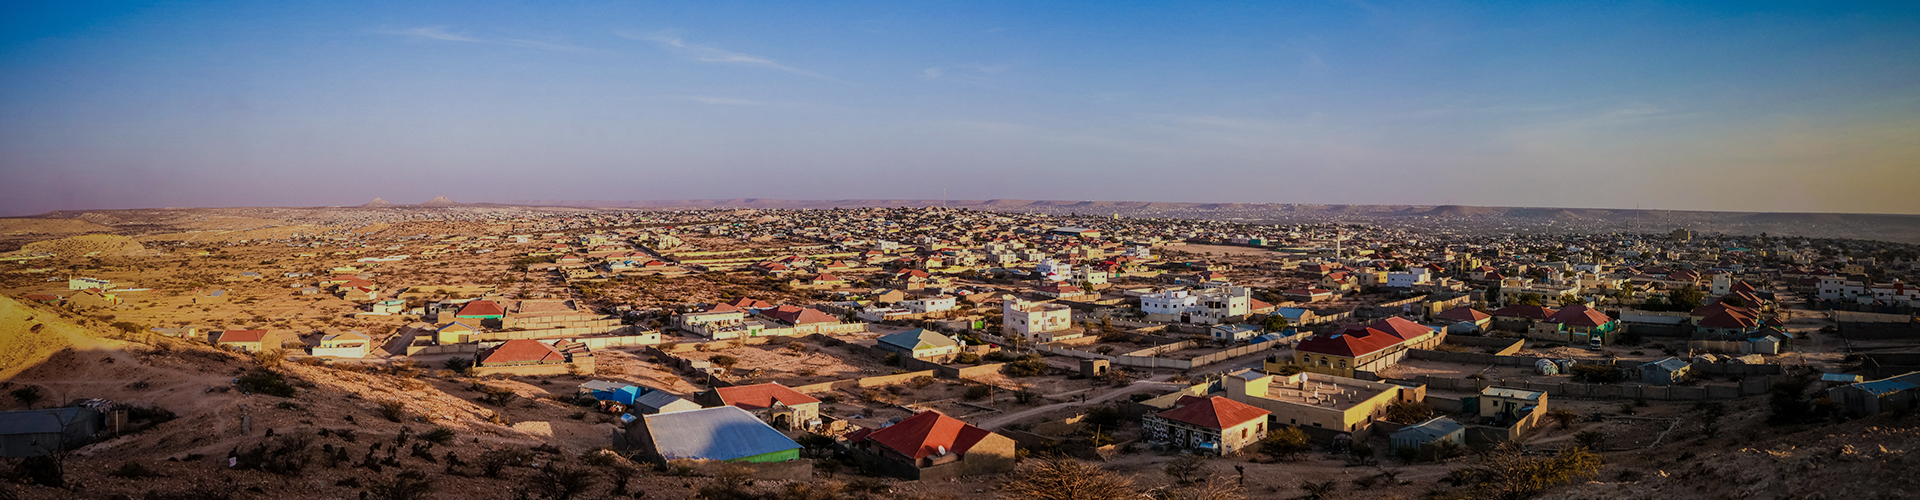 Landmark photograph of Somalia